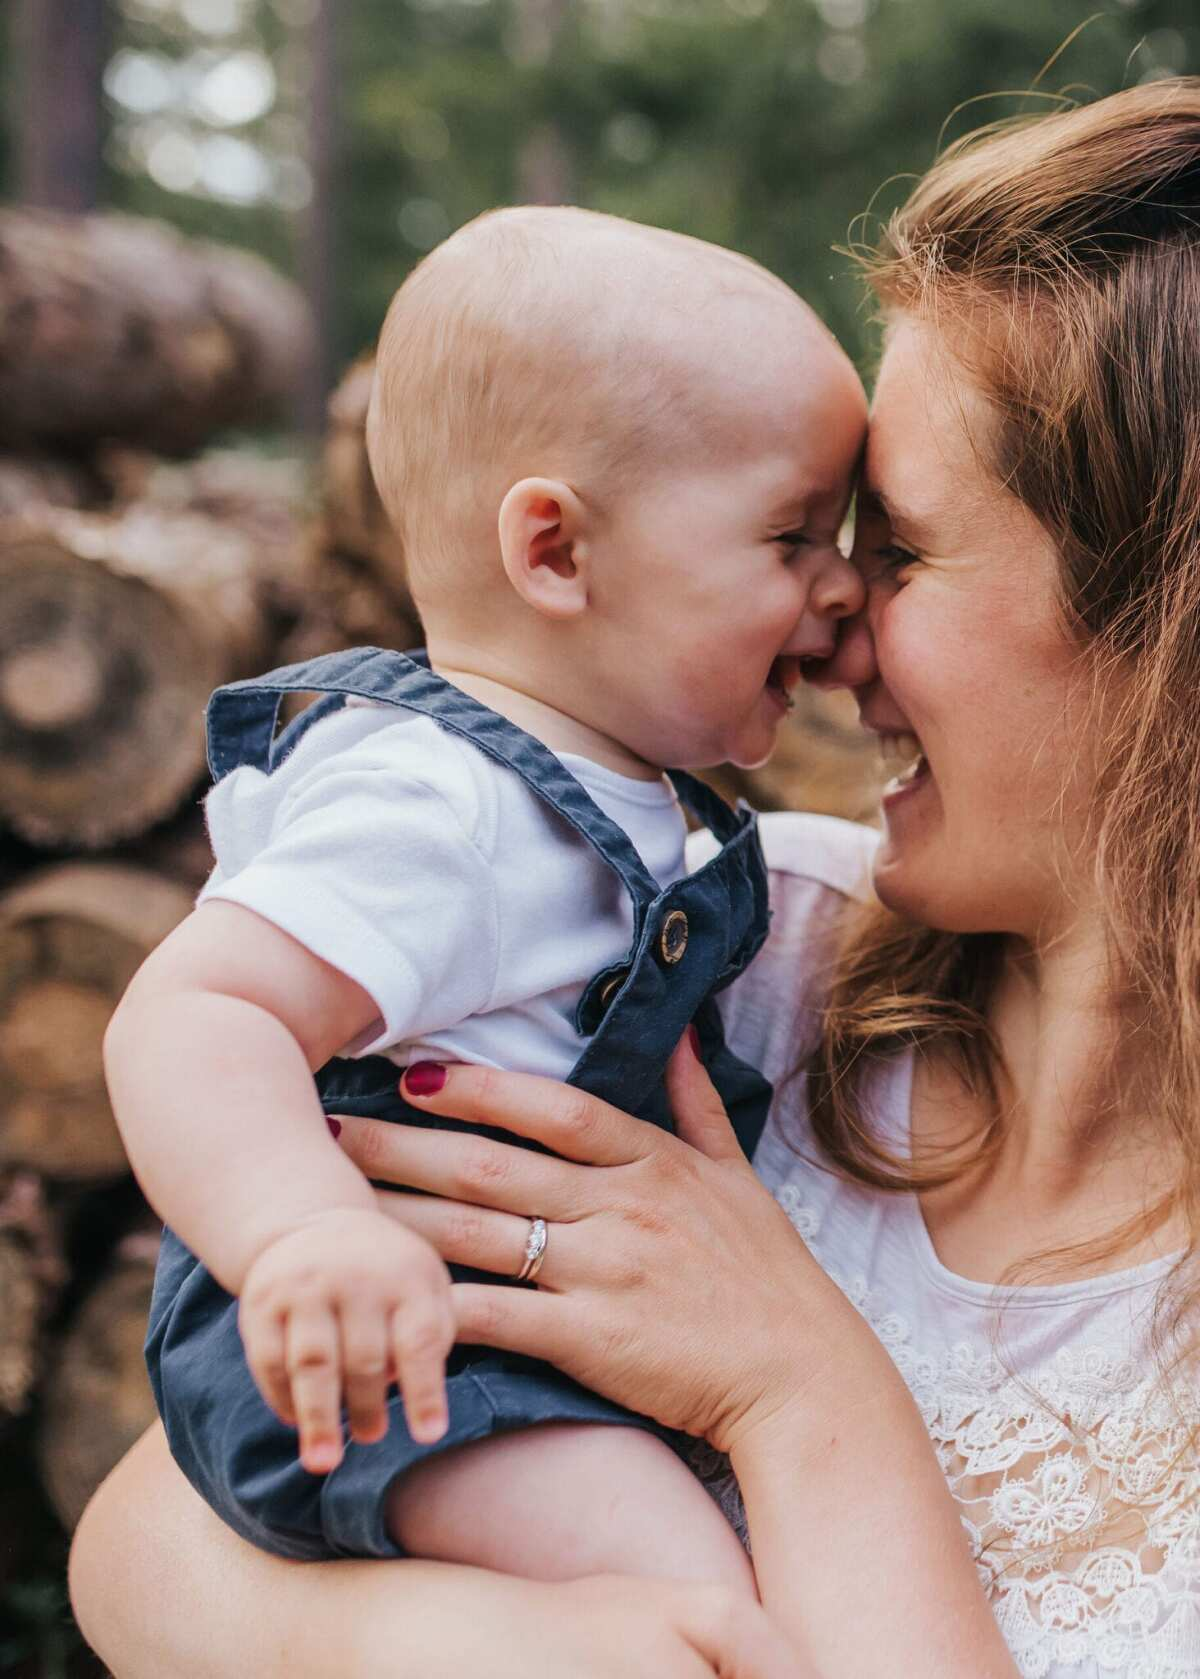 Mum and baby at a family photoshoot